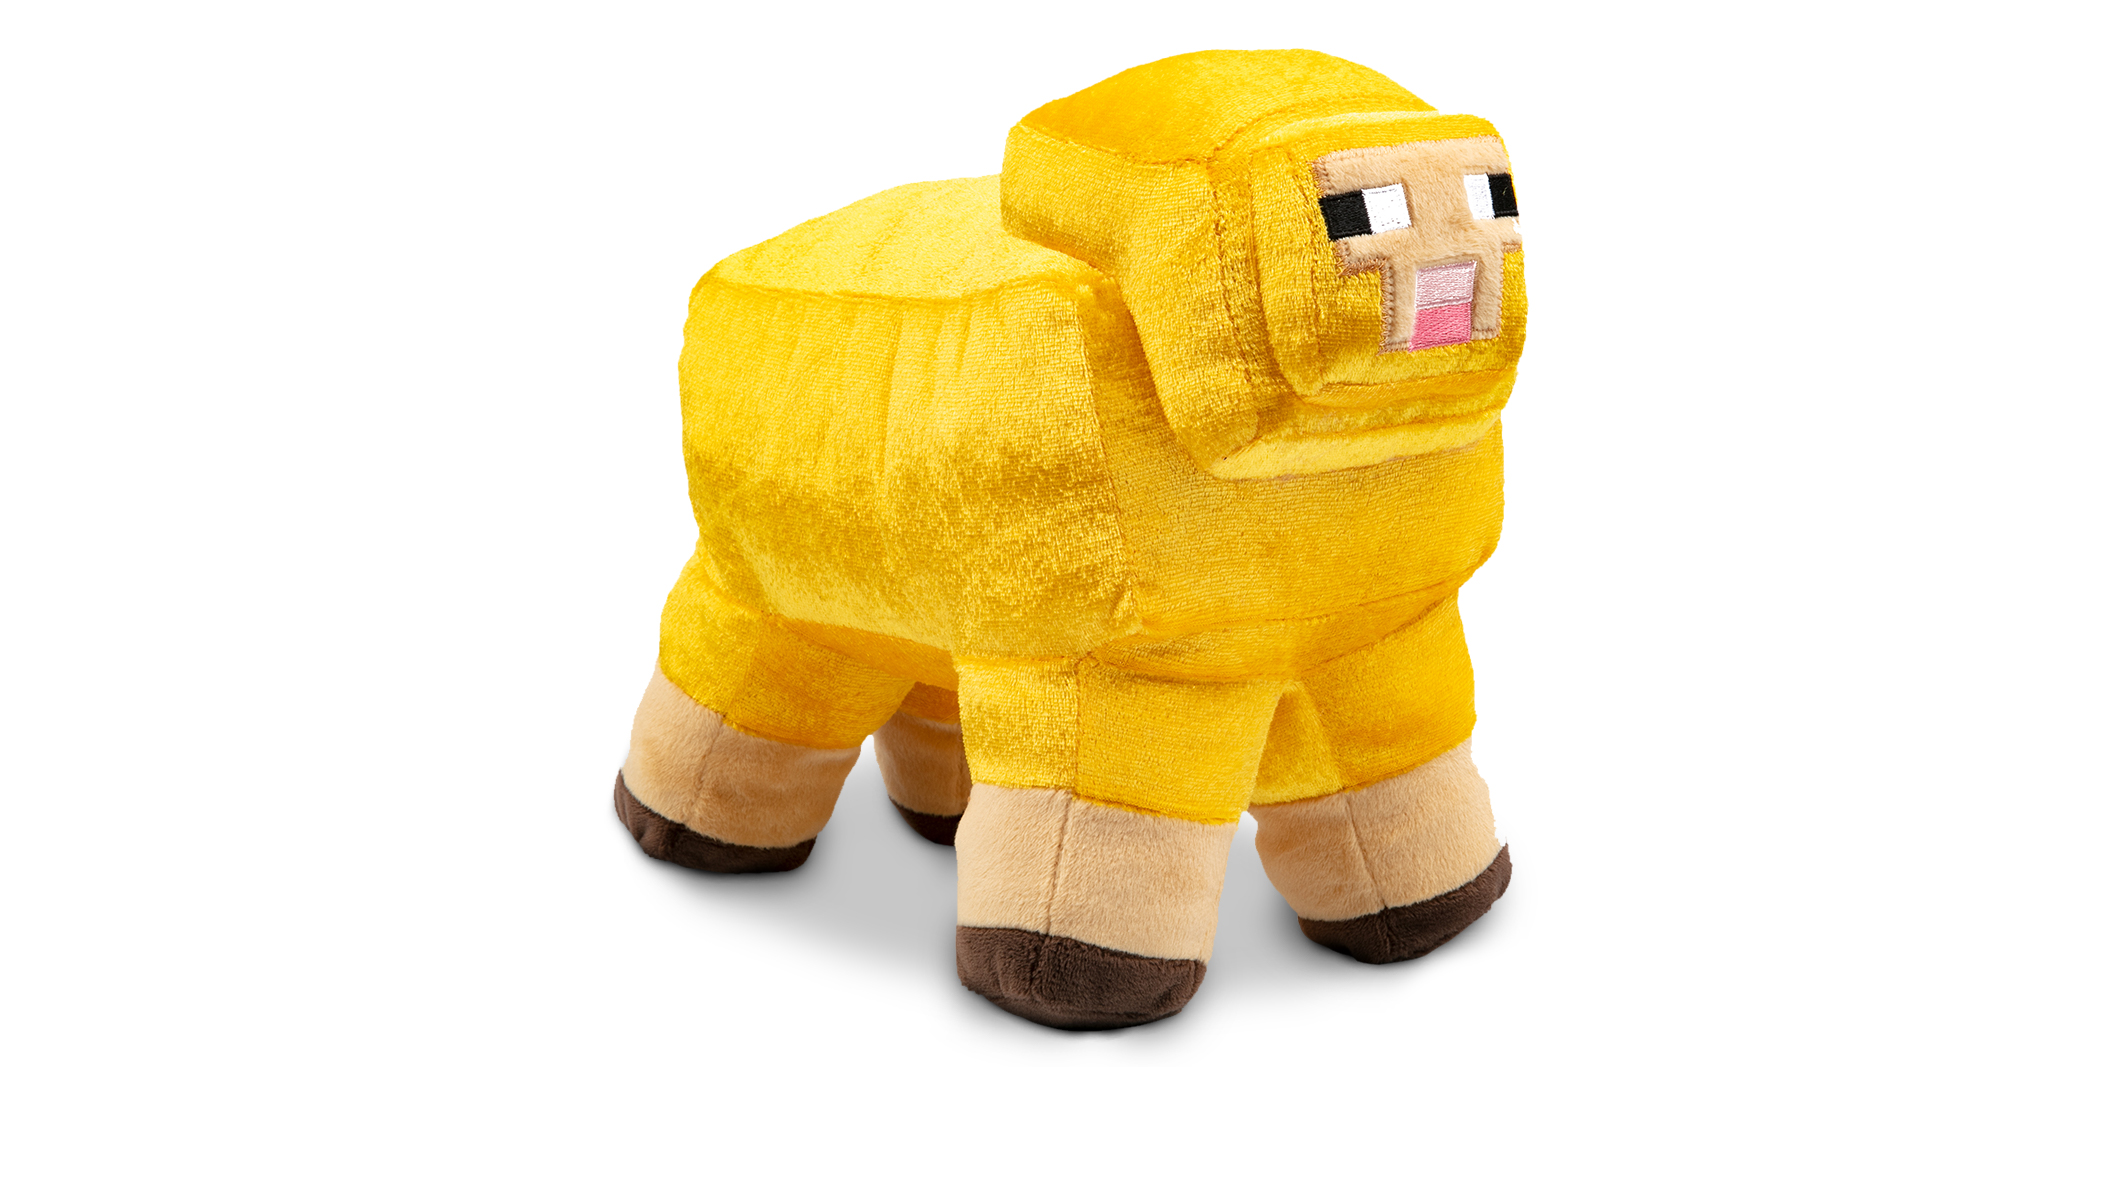 MINECON Live 2019 exclusive adventure sheep plush.